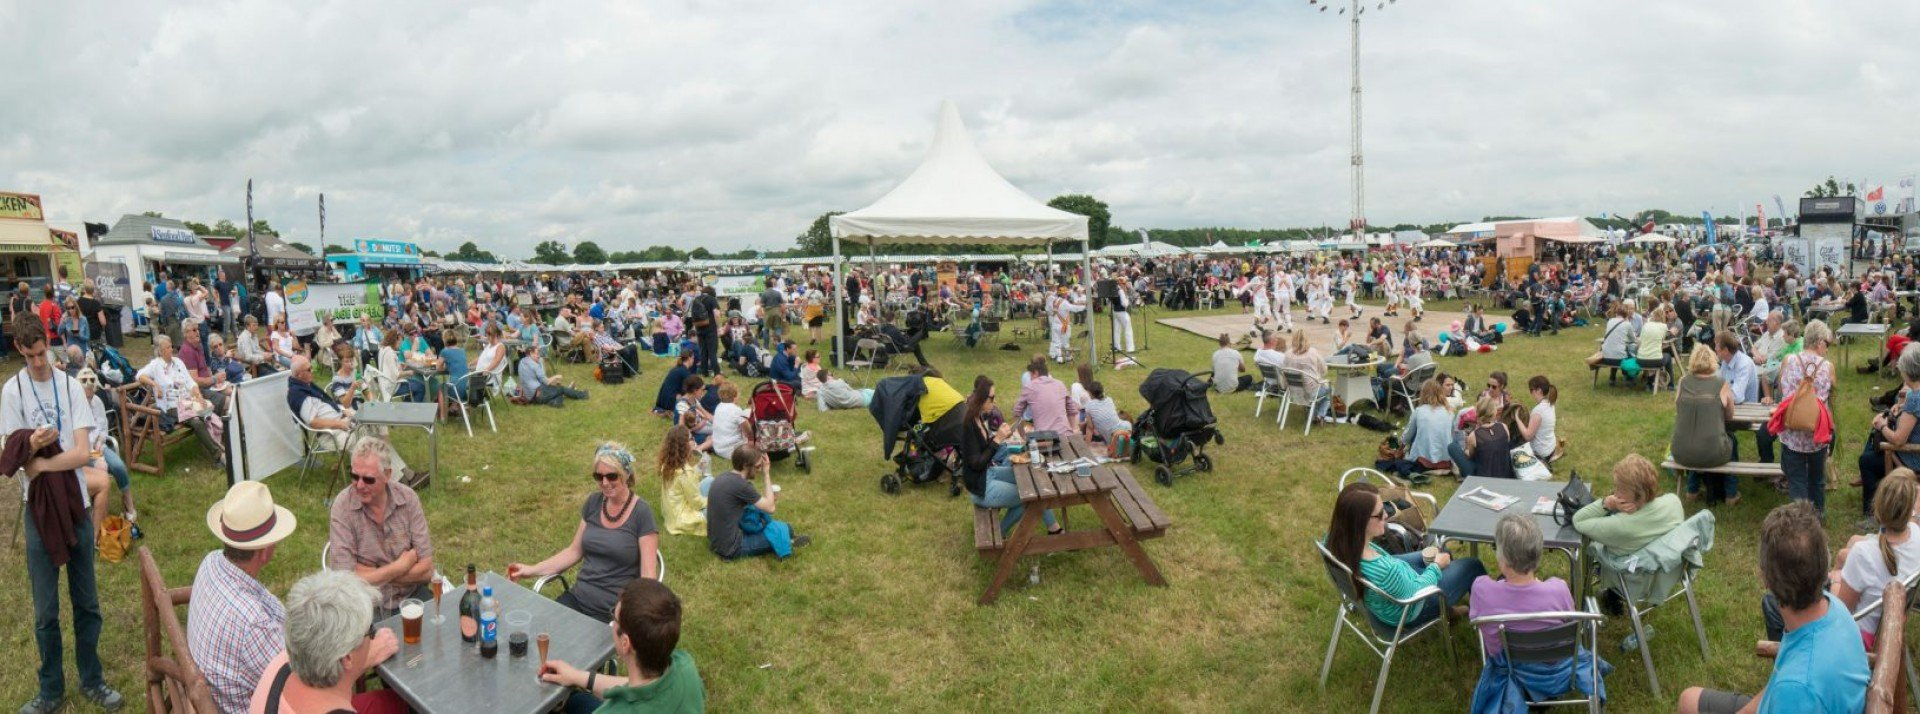 Members area - Royal Cheshire County Show